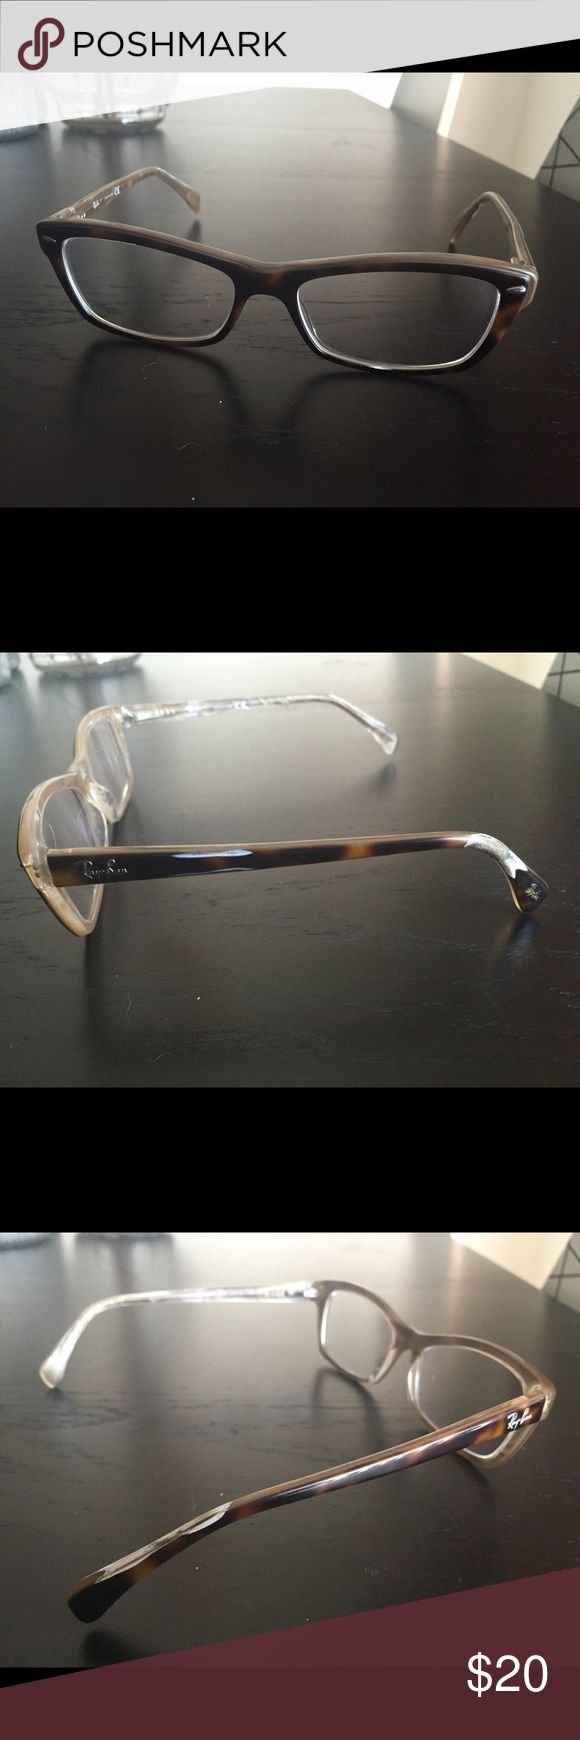 Ray ban prescription glasses Prescription glasses. Both ends of temple tips are damaged. Ray-Ban Accessories Glasses